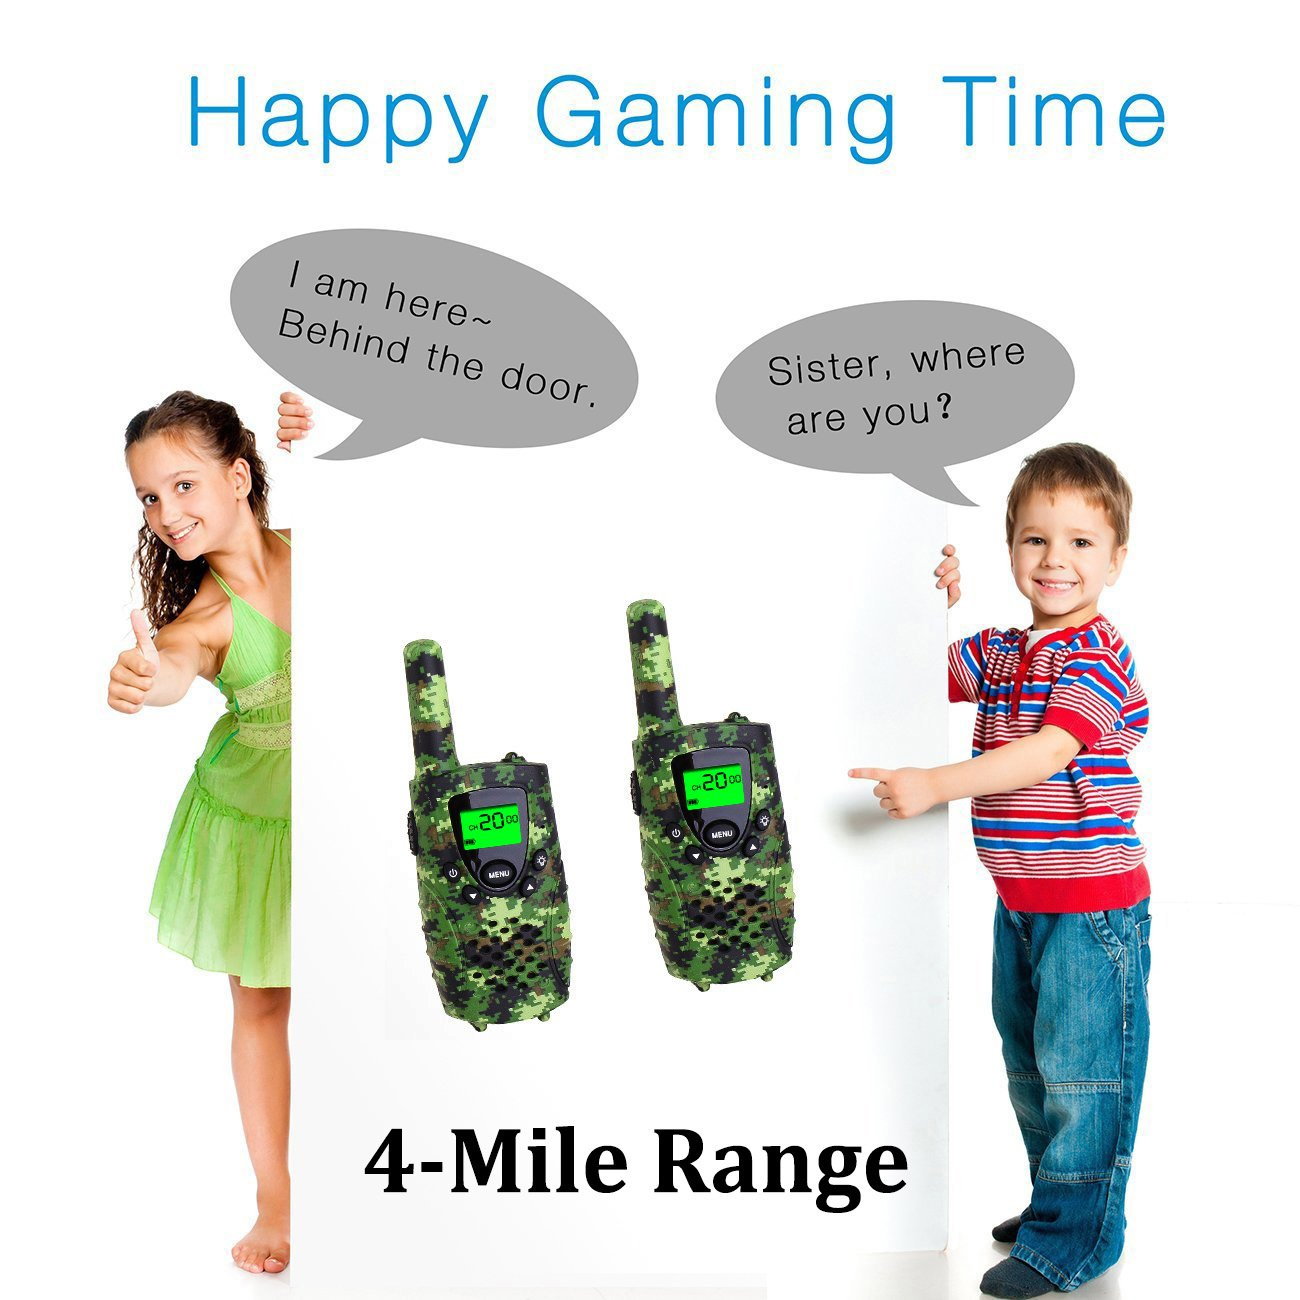 Walkie Talkies for Kids, FAYOGOO 22 Channel Walkie Talkies Two Way Radio 3 Miles (Up to 4 Miles) Long Range Set Mini Walkie Talkies for Kids, Toys for 3 Year Old Up Boys and Girls (Camo Green) by FAYOGOO (Image #4)